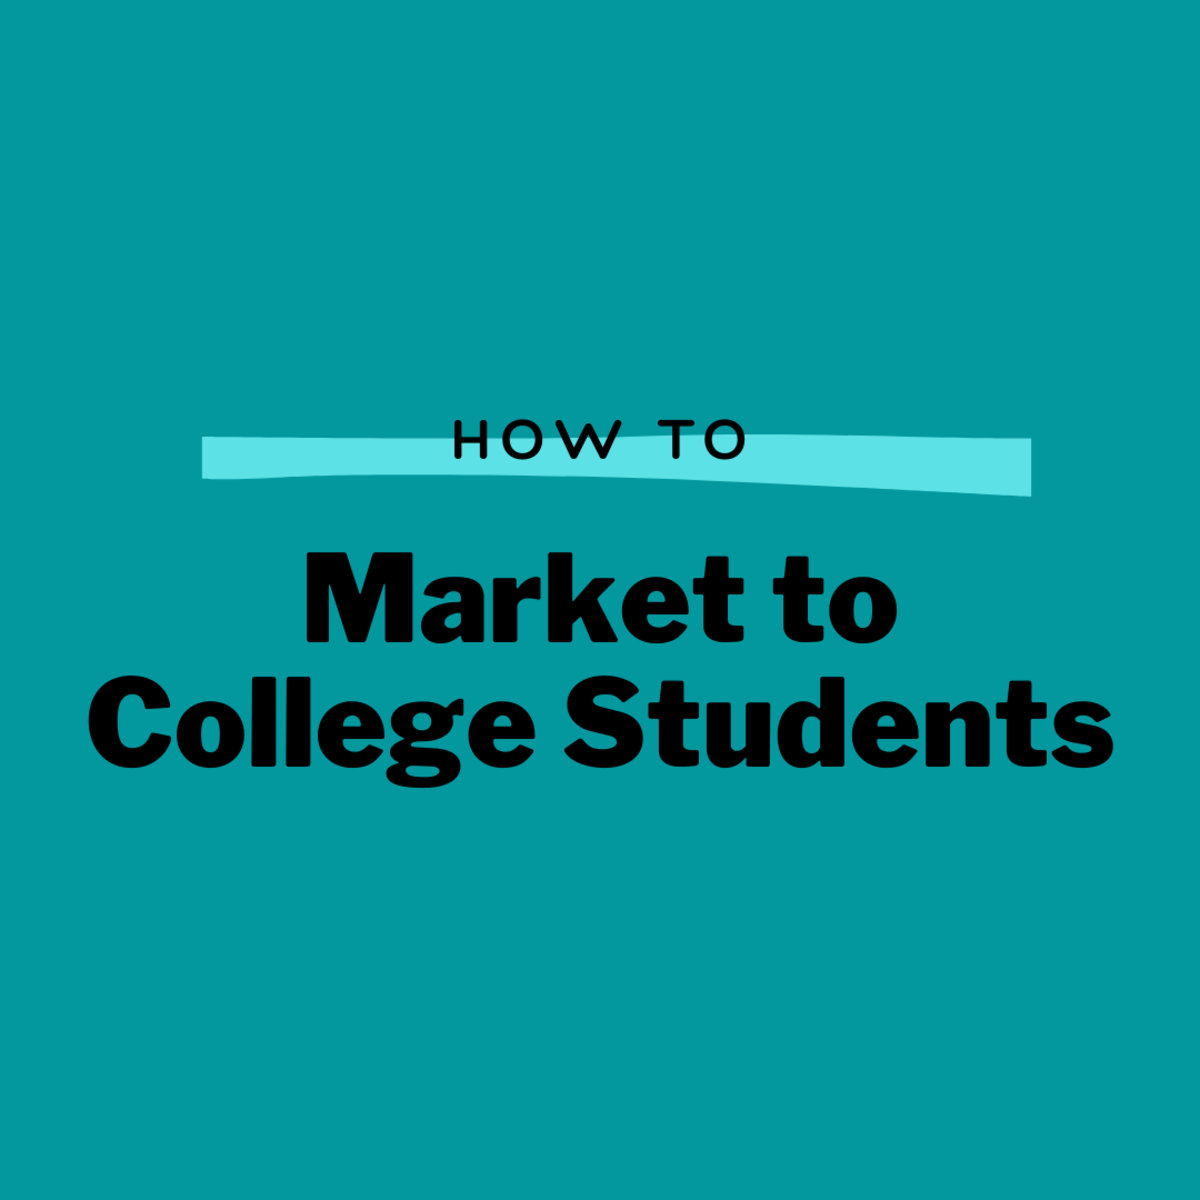 How to Market Your Small Business to College Students